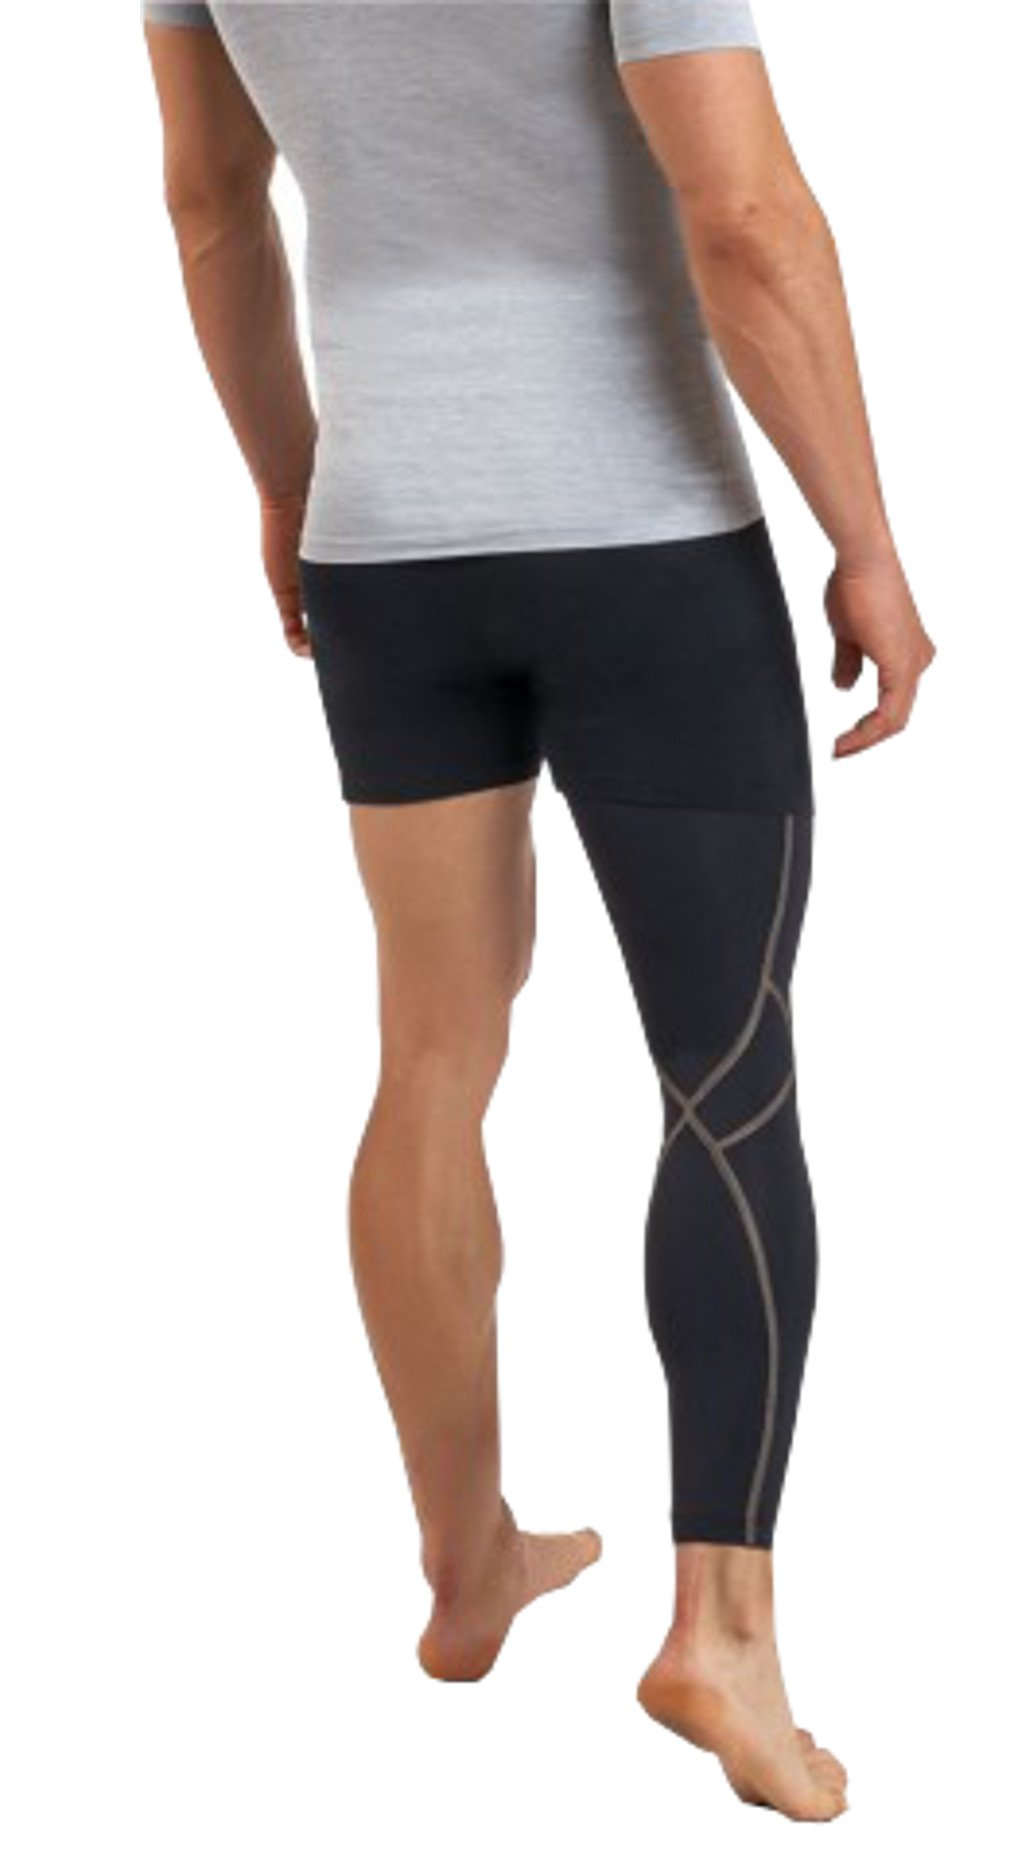 Tommie Copper Men Compression Full Leg Sleeve Free